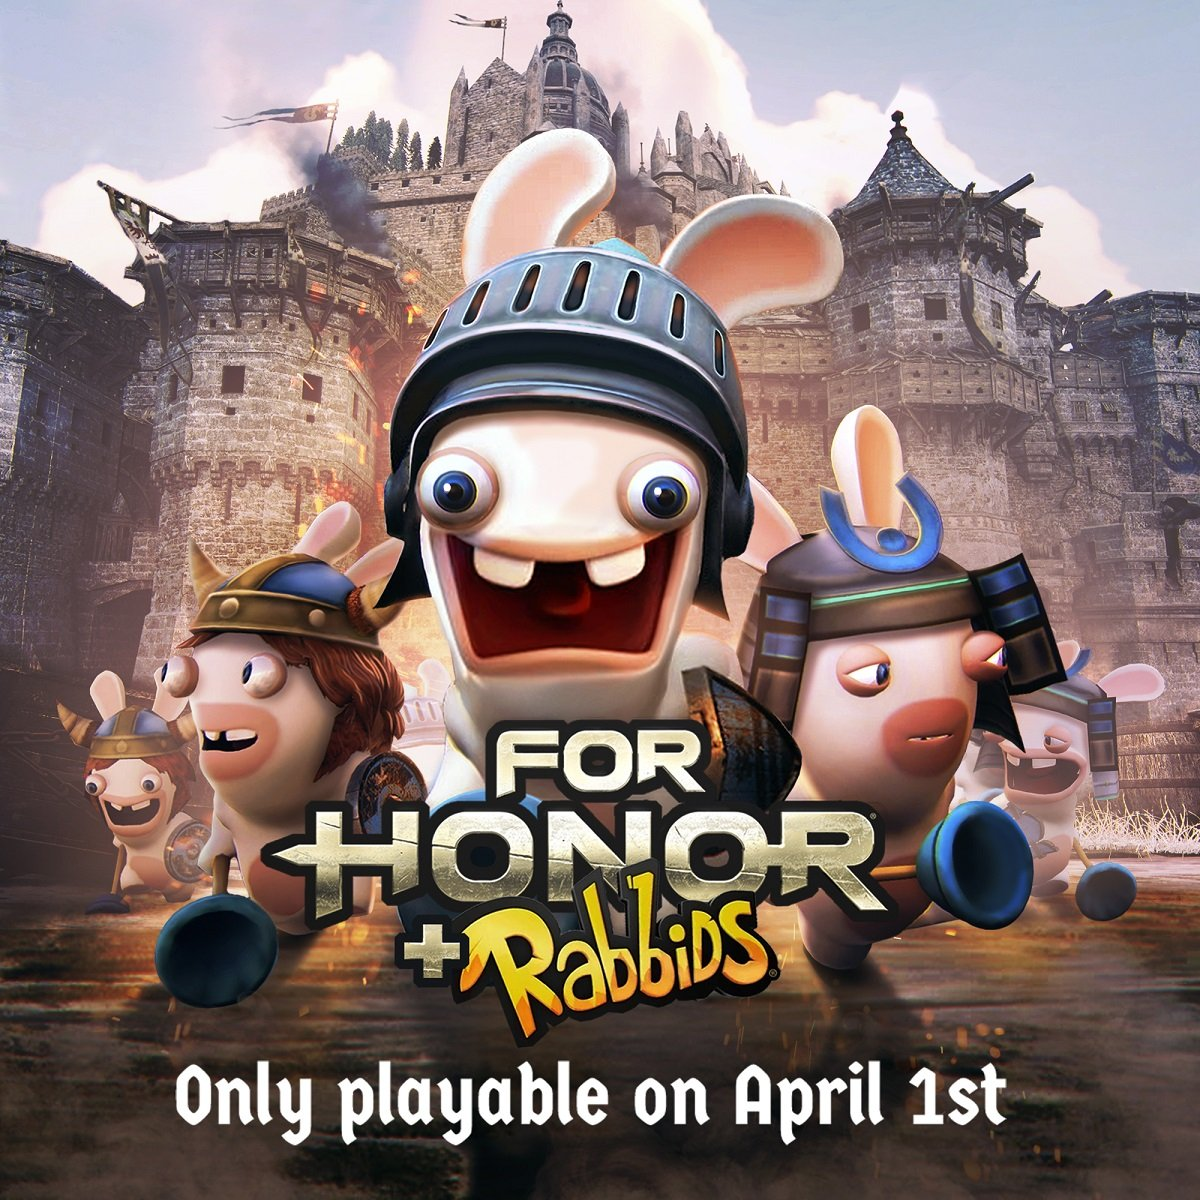 Those goofy Rabbids have invaded For Honor in this 24 hour long April Fools' Day special event.